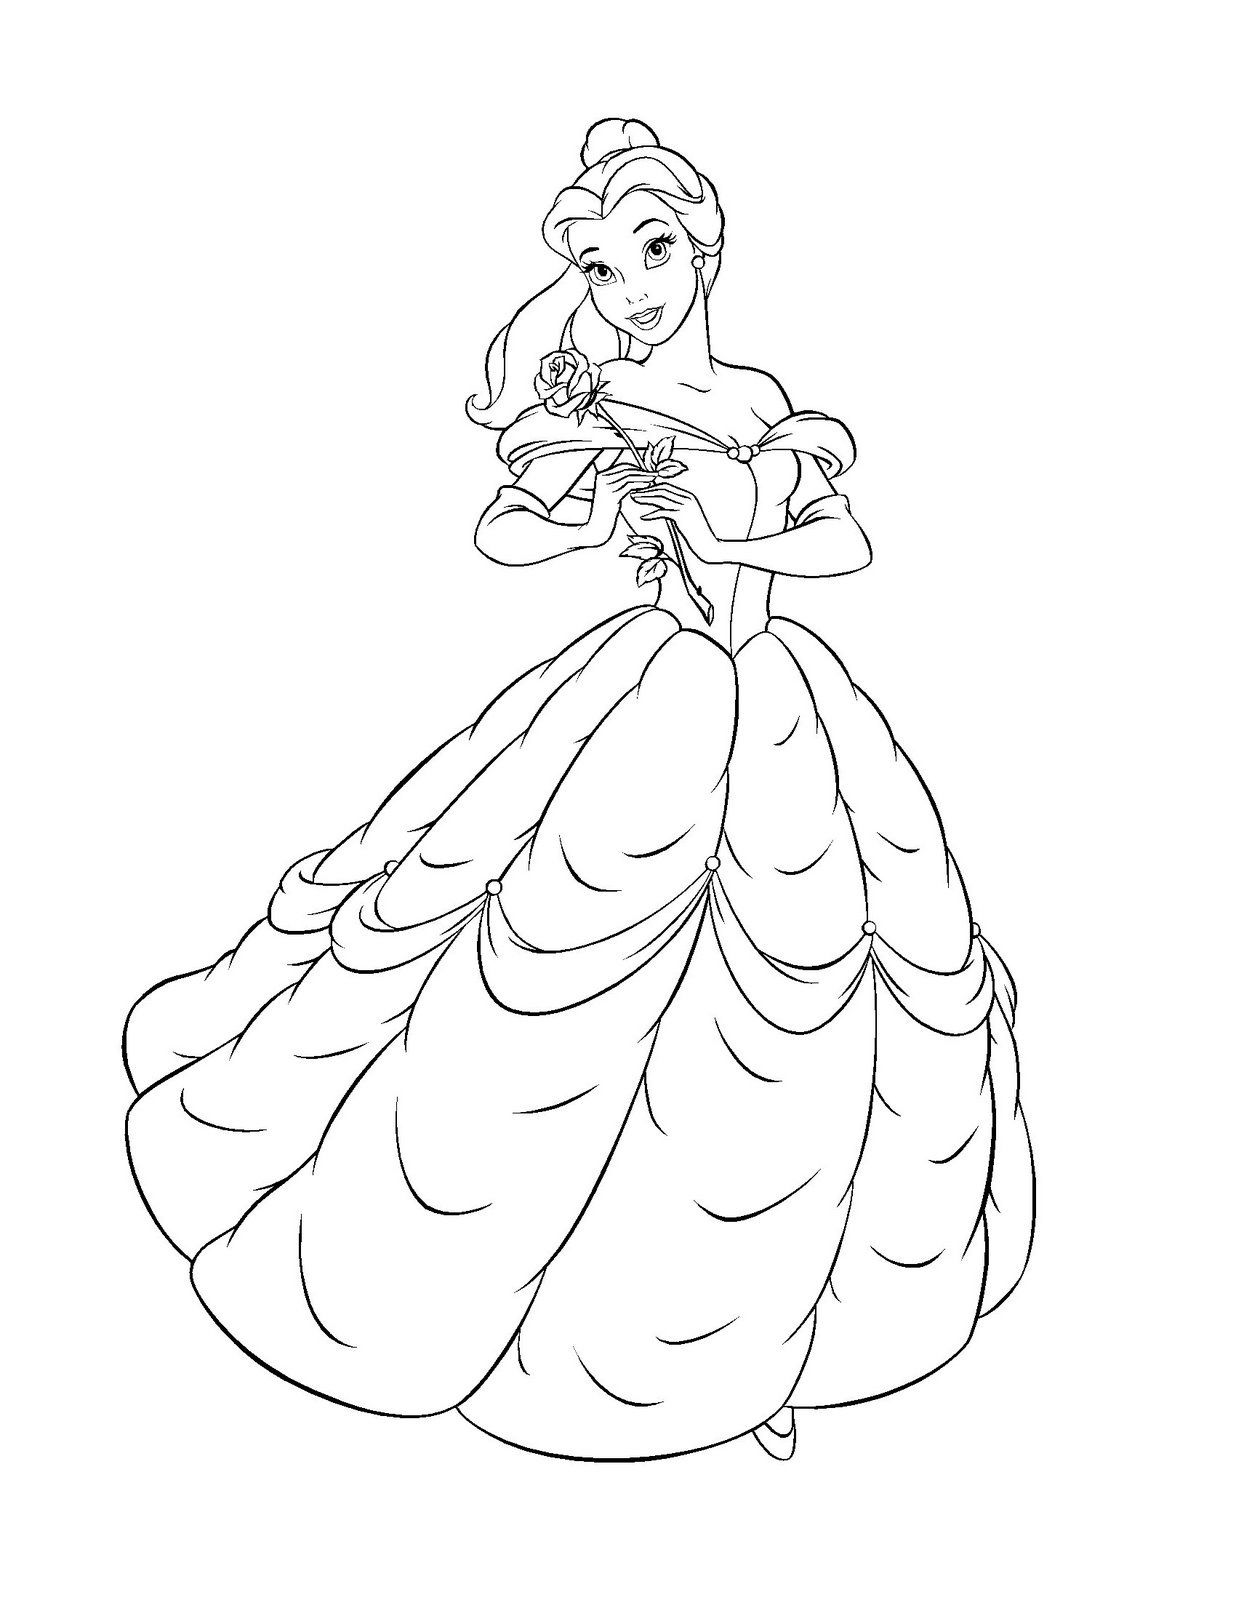 Belle For Coloring Belle Coloring Pages Belle Coloring Pages Disney Belle Colorin Belle Coloring Pages Disney Princess Coloring Pages Disney Princess Colors